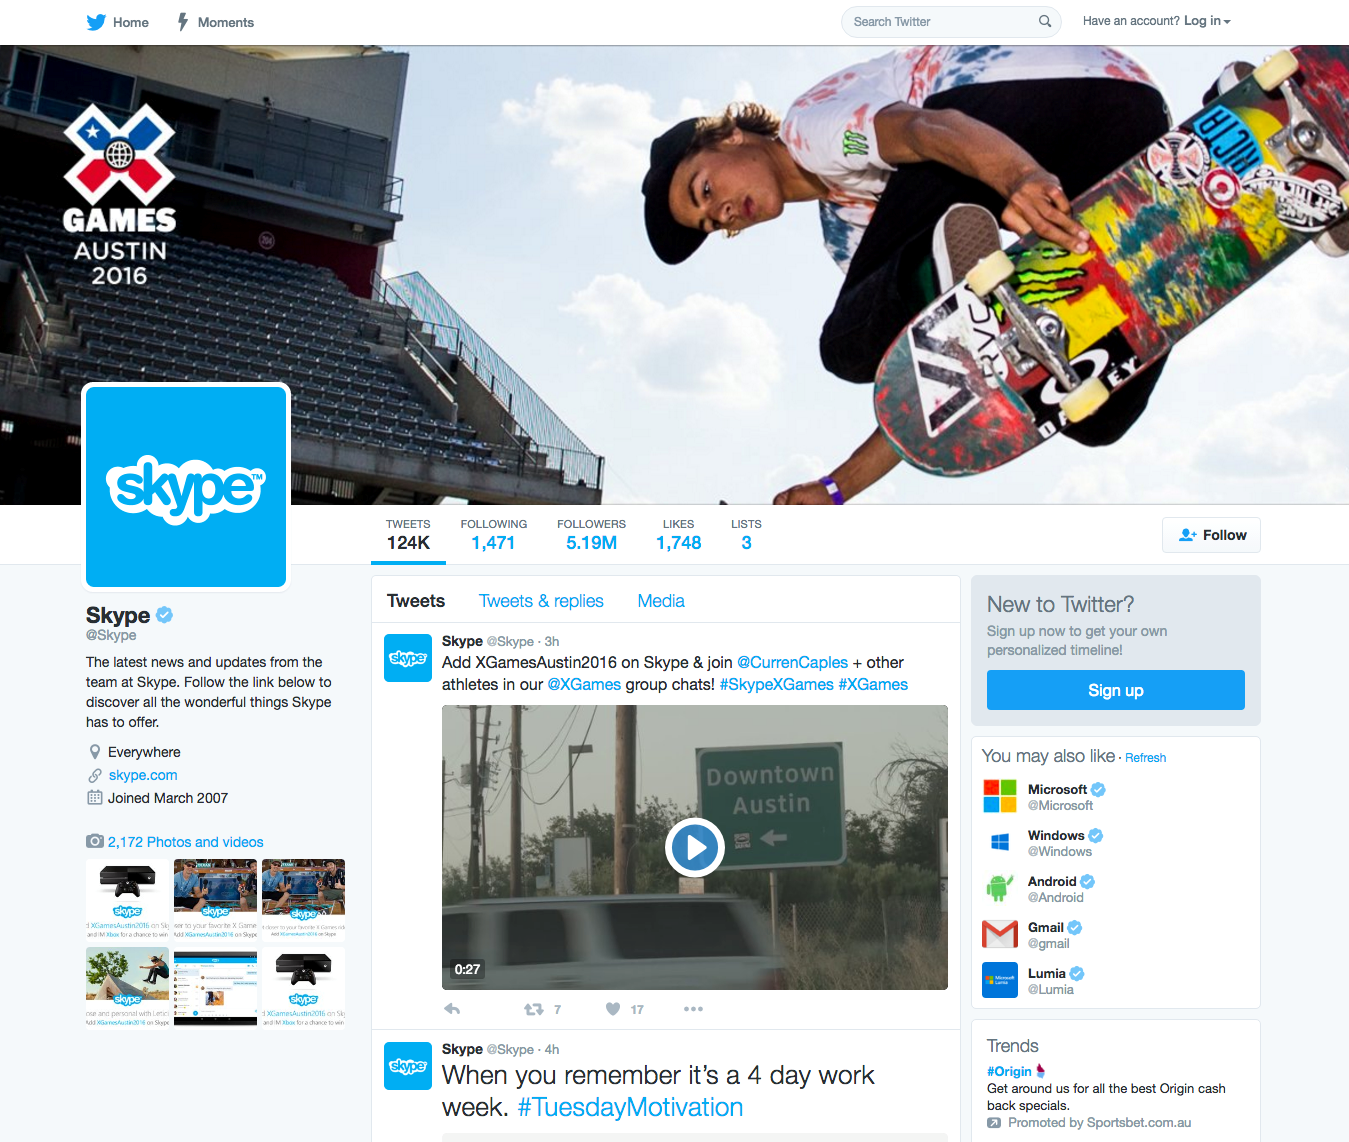 skype twitter page